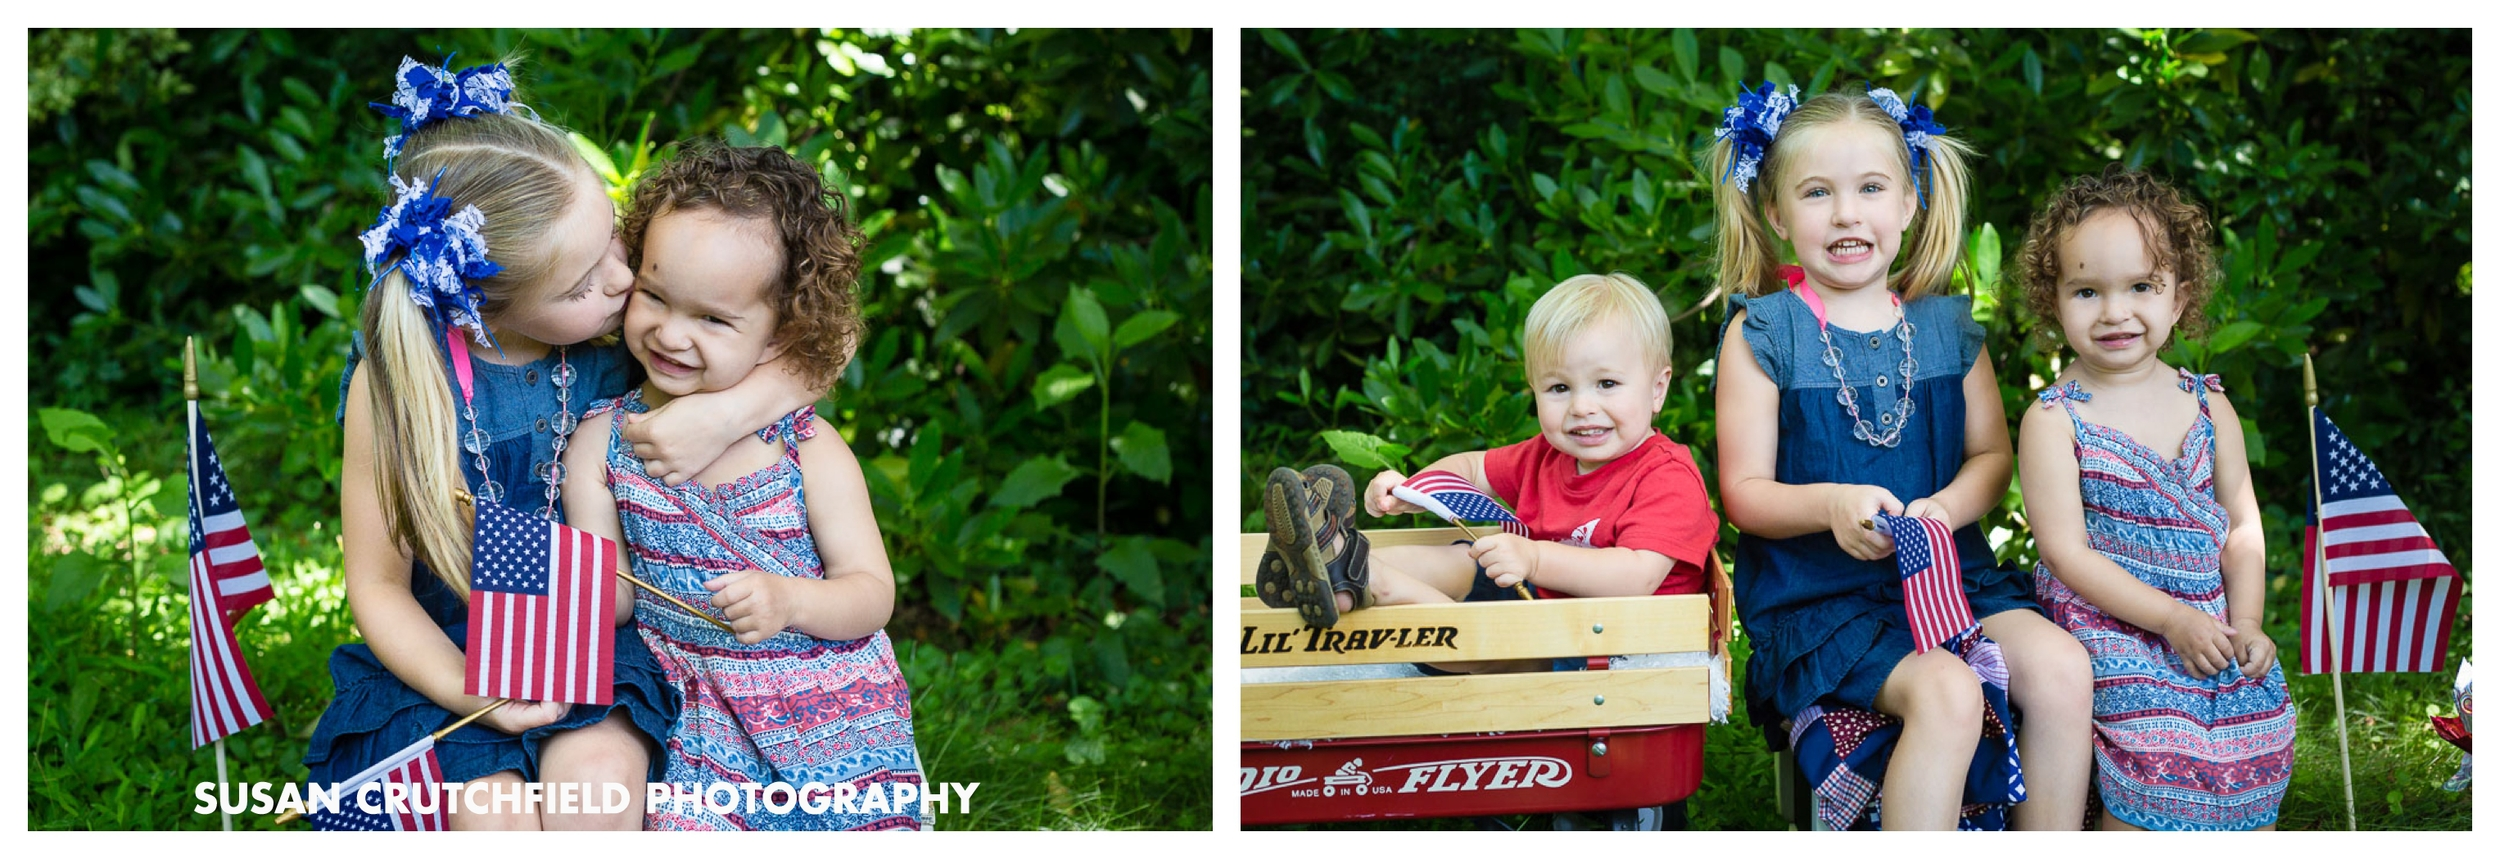 Atlanta Children's Photography